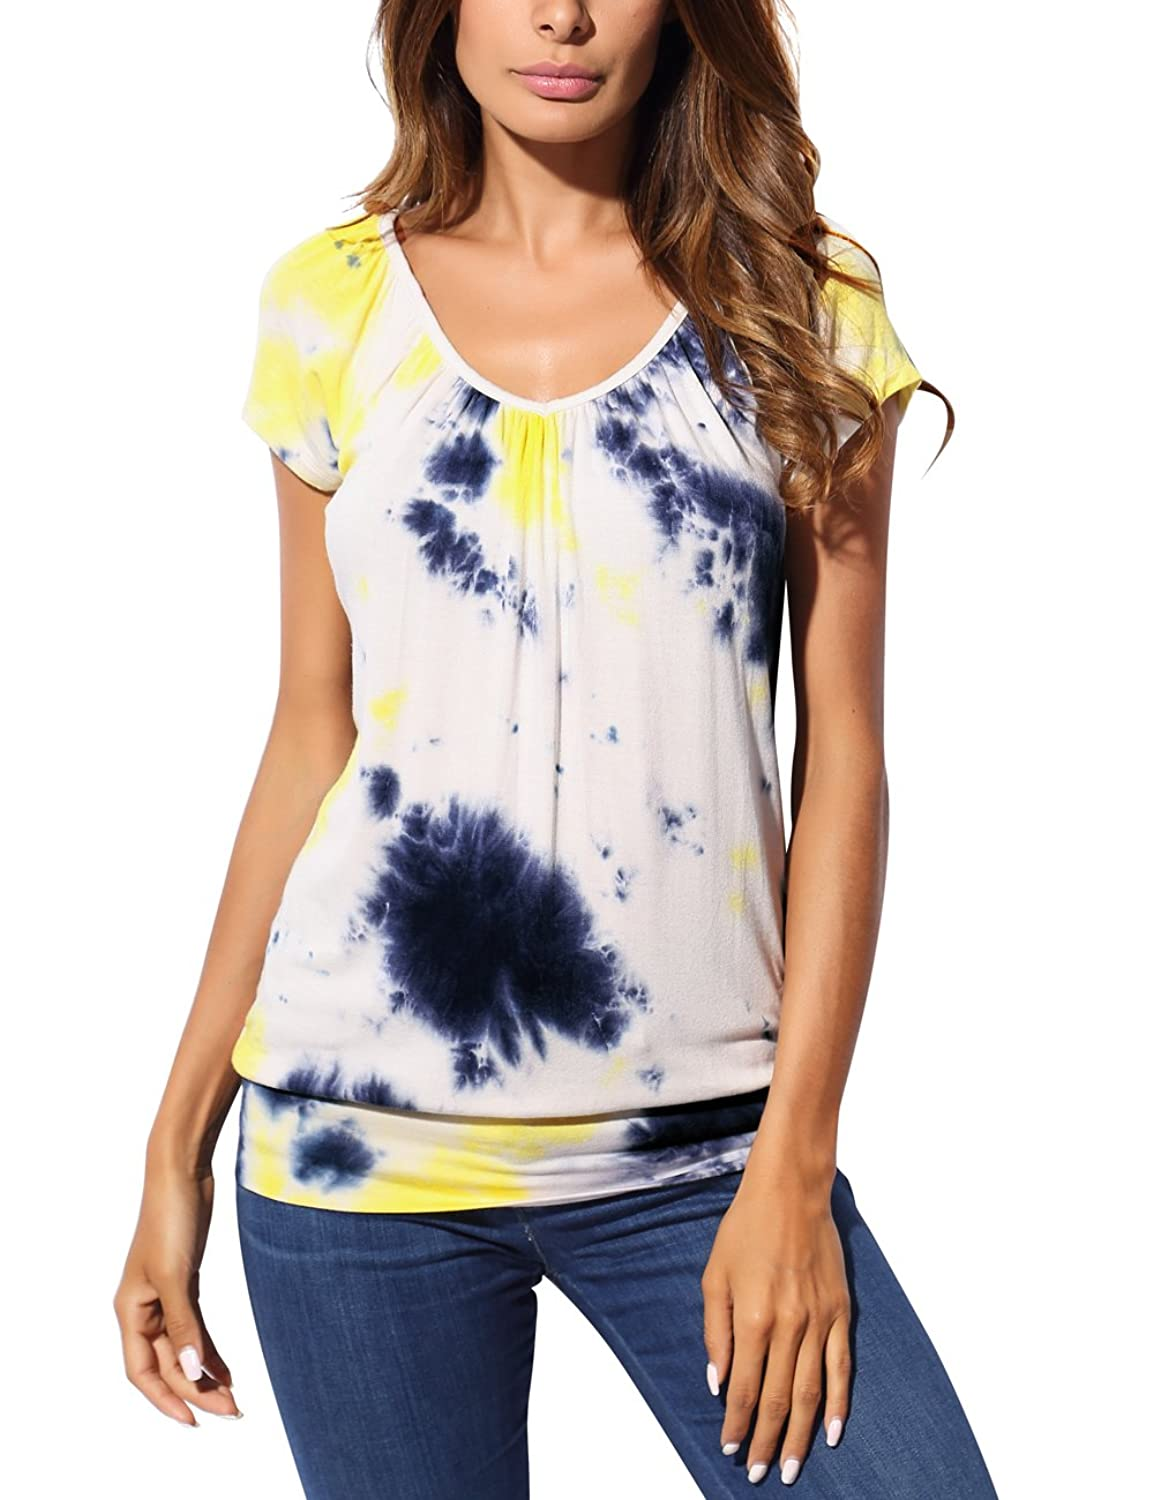 9315c60a1a5 DJT Women s Short Sleeve Tie Dye T Shirt V Neck Pleated Blouse Tunic Top